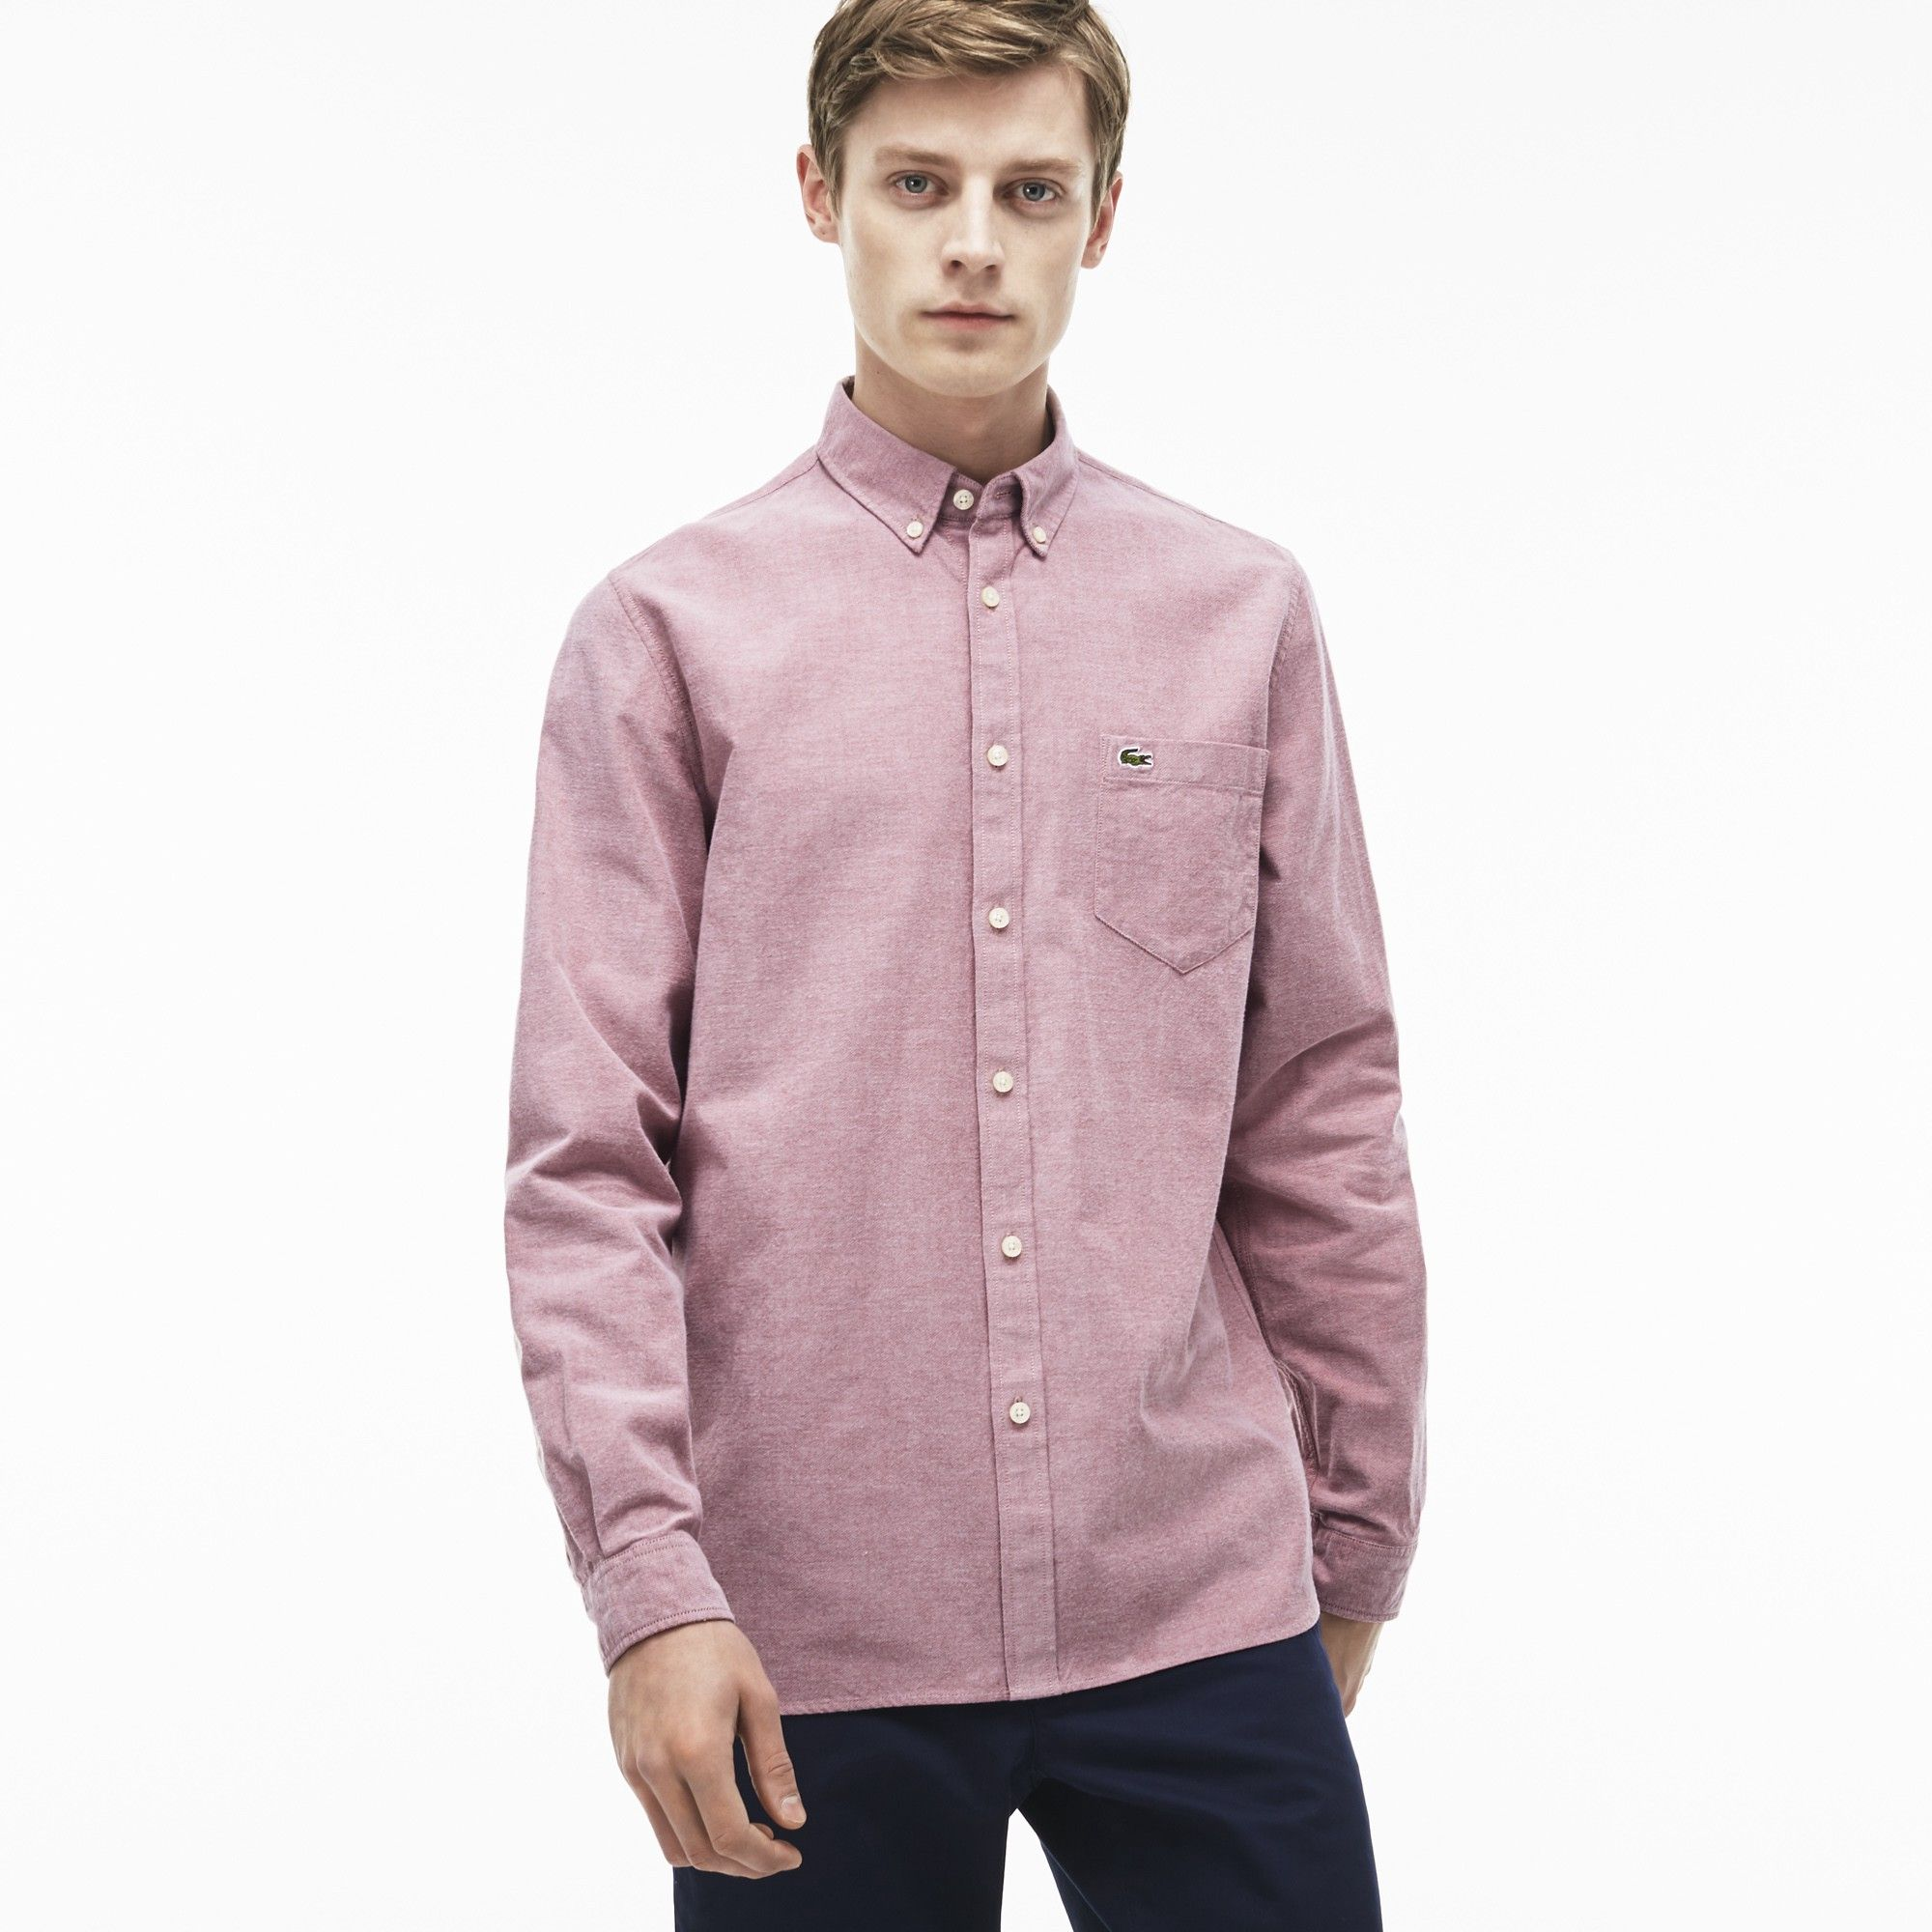 6b25f2759b LACOSTE Men's Regular Fit Oxford Cotton Shirt - autumnal red/white ...